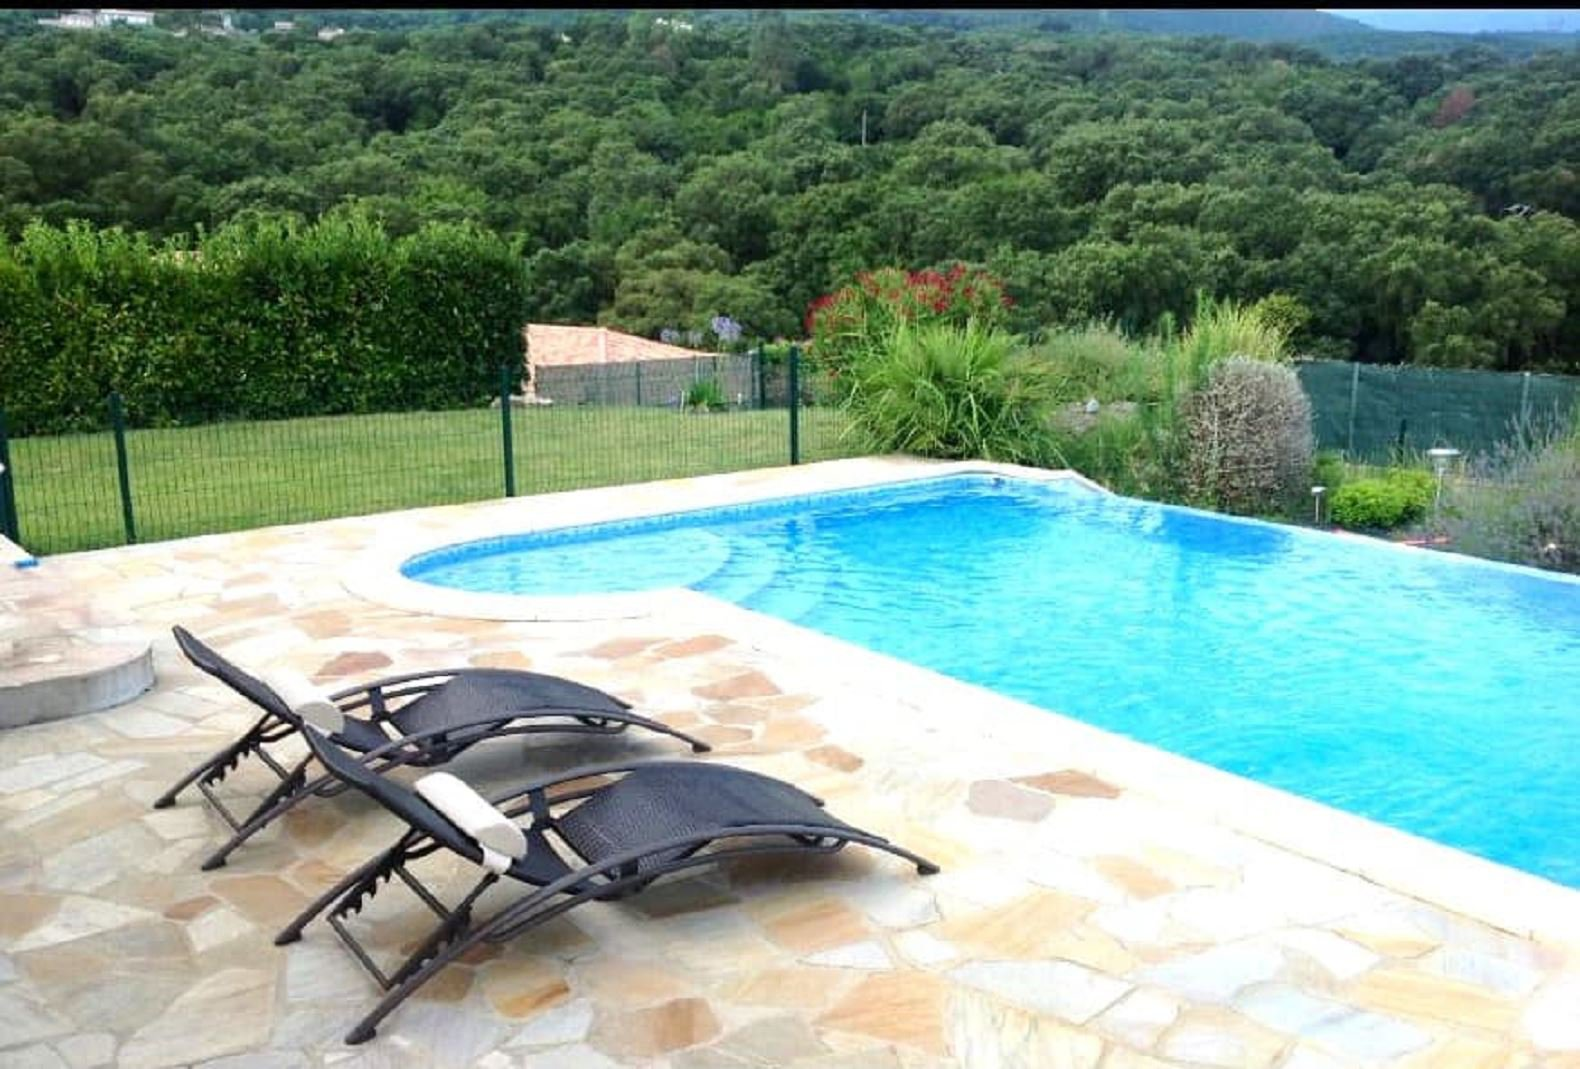 Villa in Corsica with swimming pool